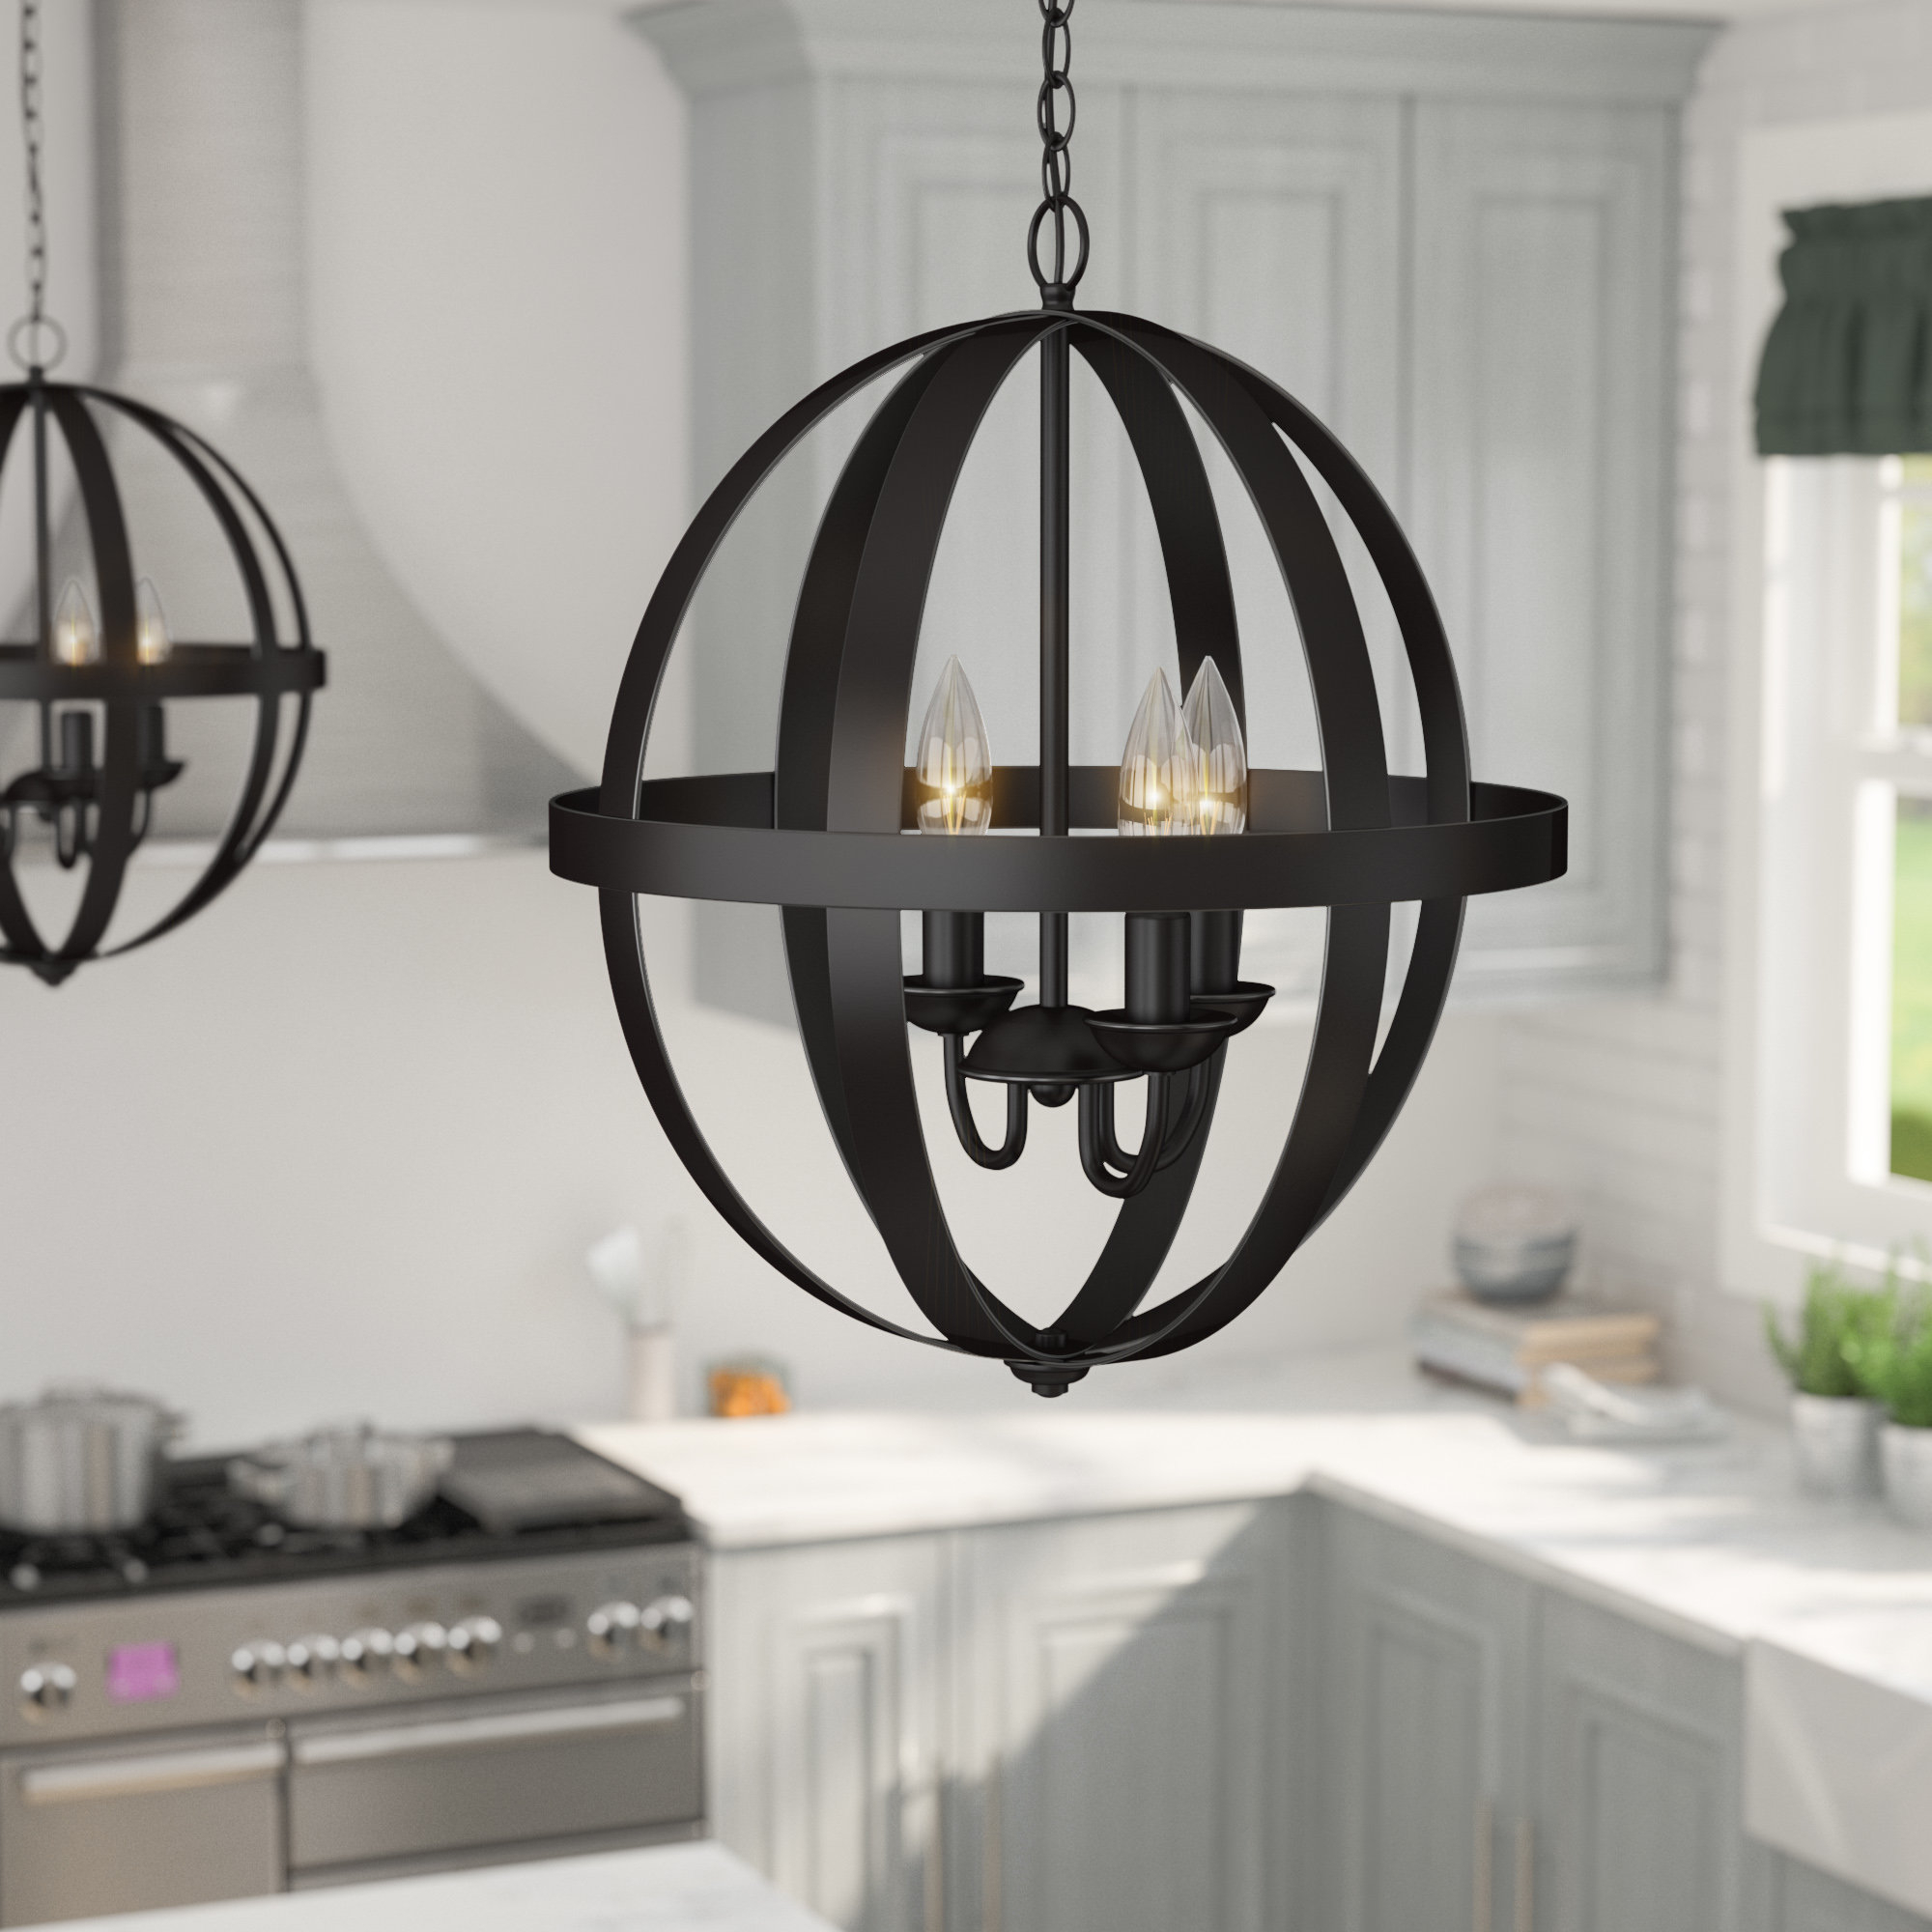 Most Recently Released La Barge 3 Light Globe Chandelier Pertaining To Alden 3 Light Single Globe Pendants (View 16 of 25)